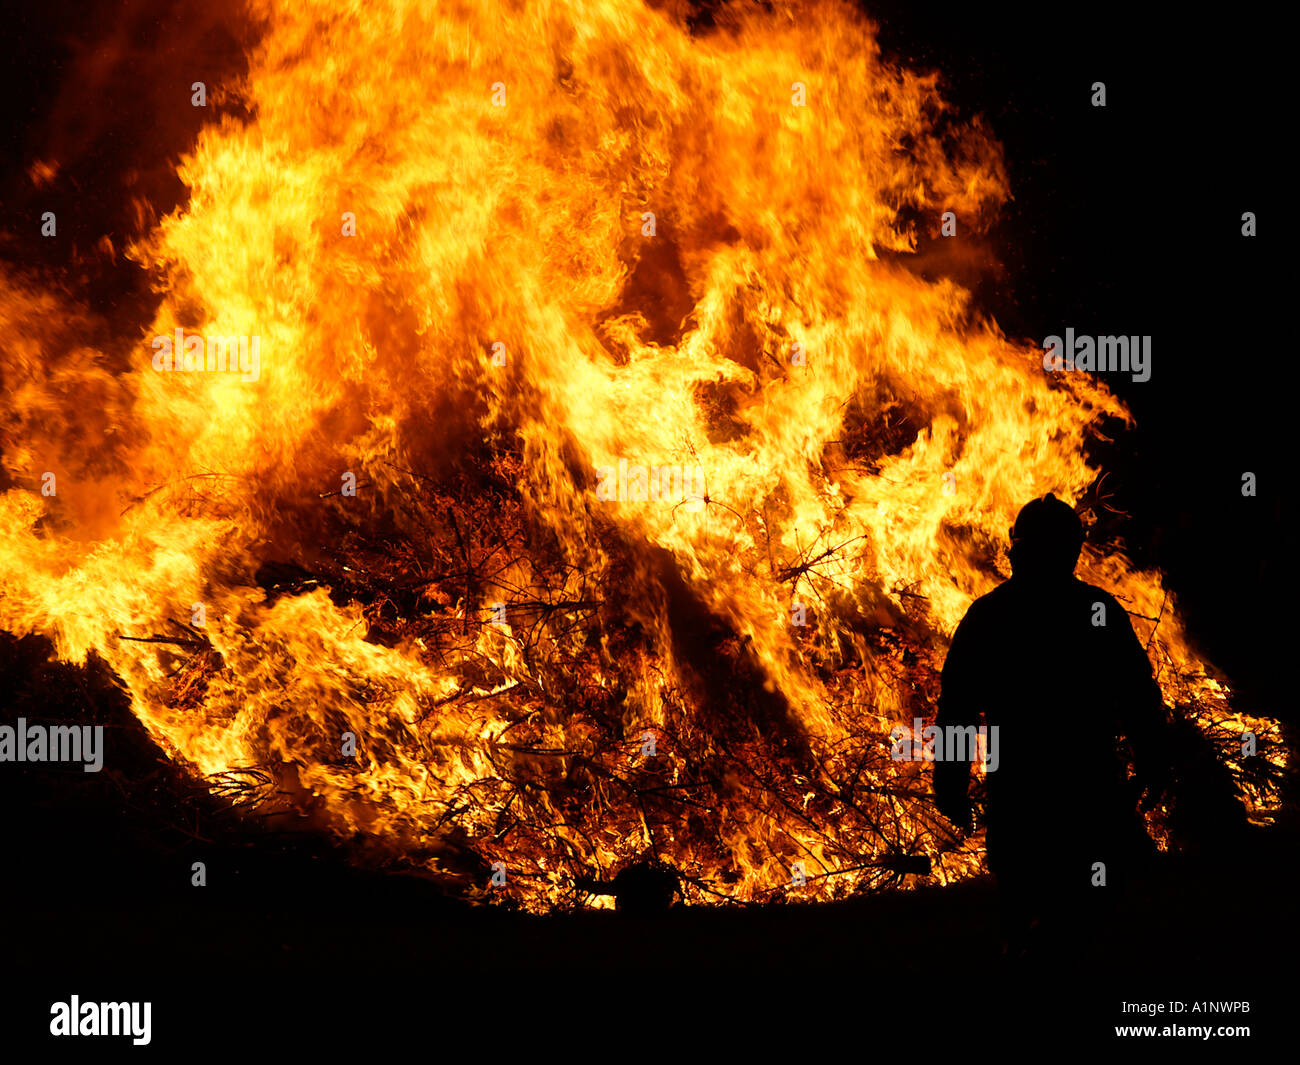 flames stockfotos flames bilder alamy. Black Bedroom Furniture Sets. Home Design Ideas